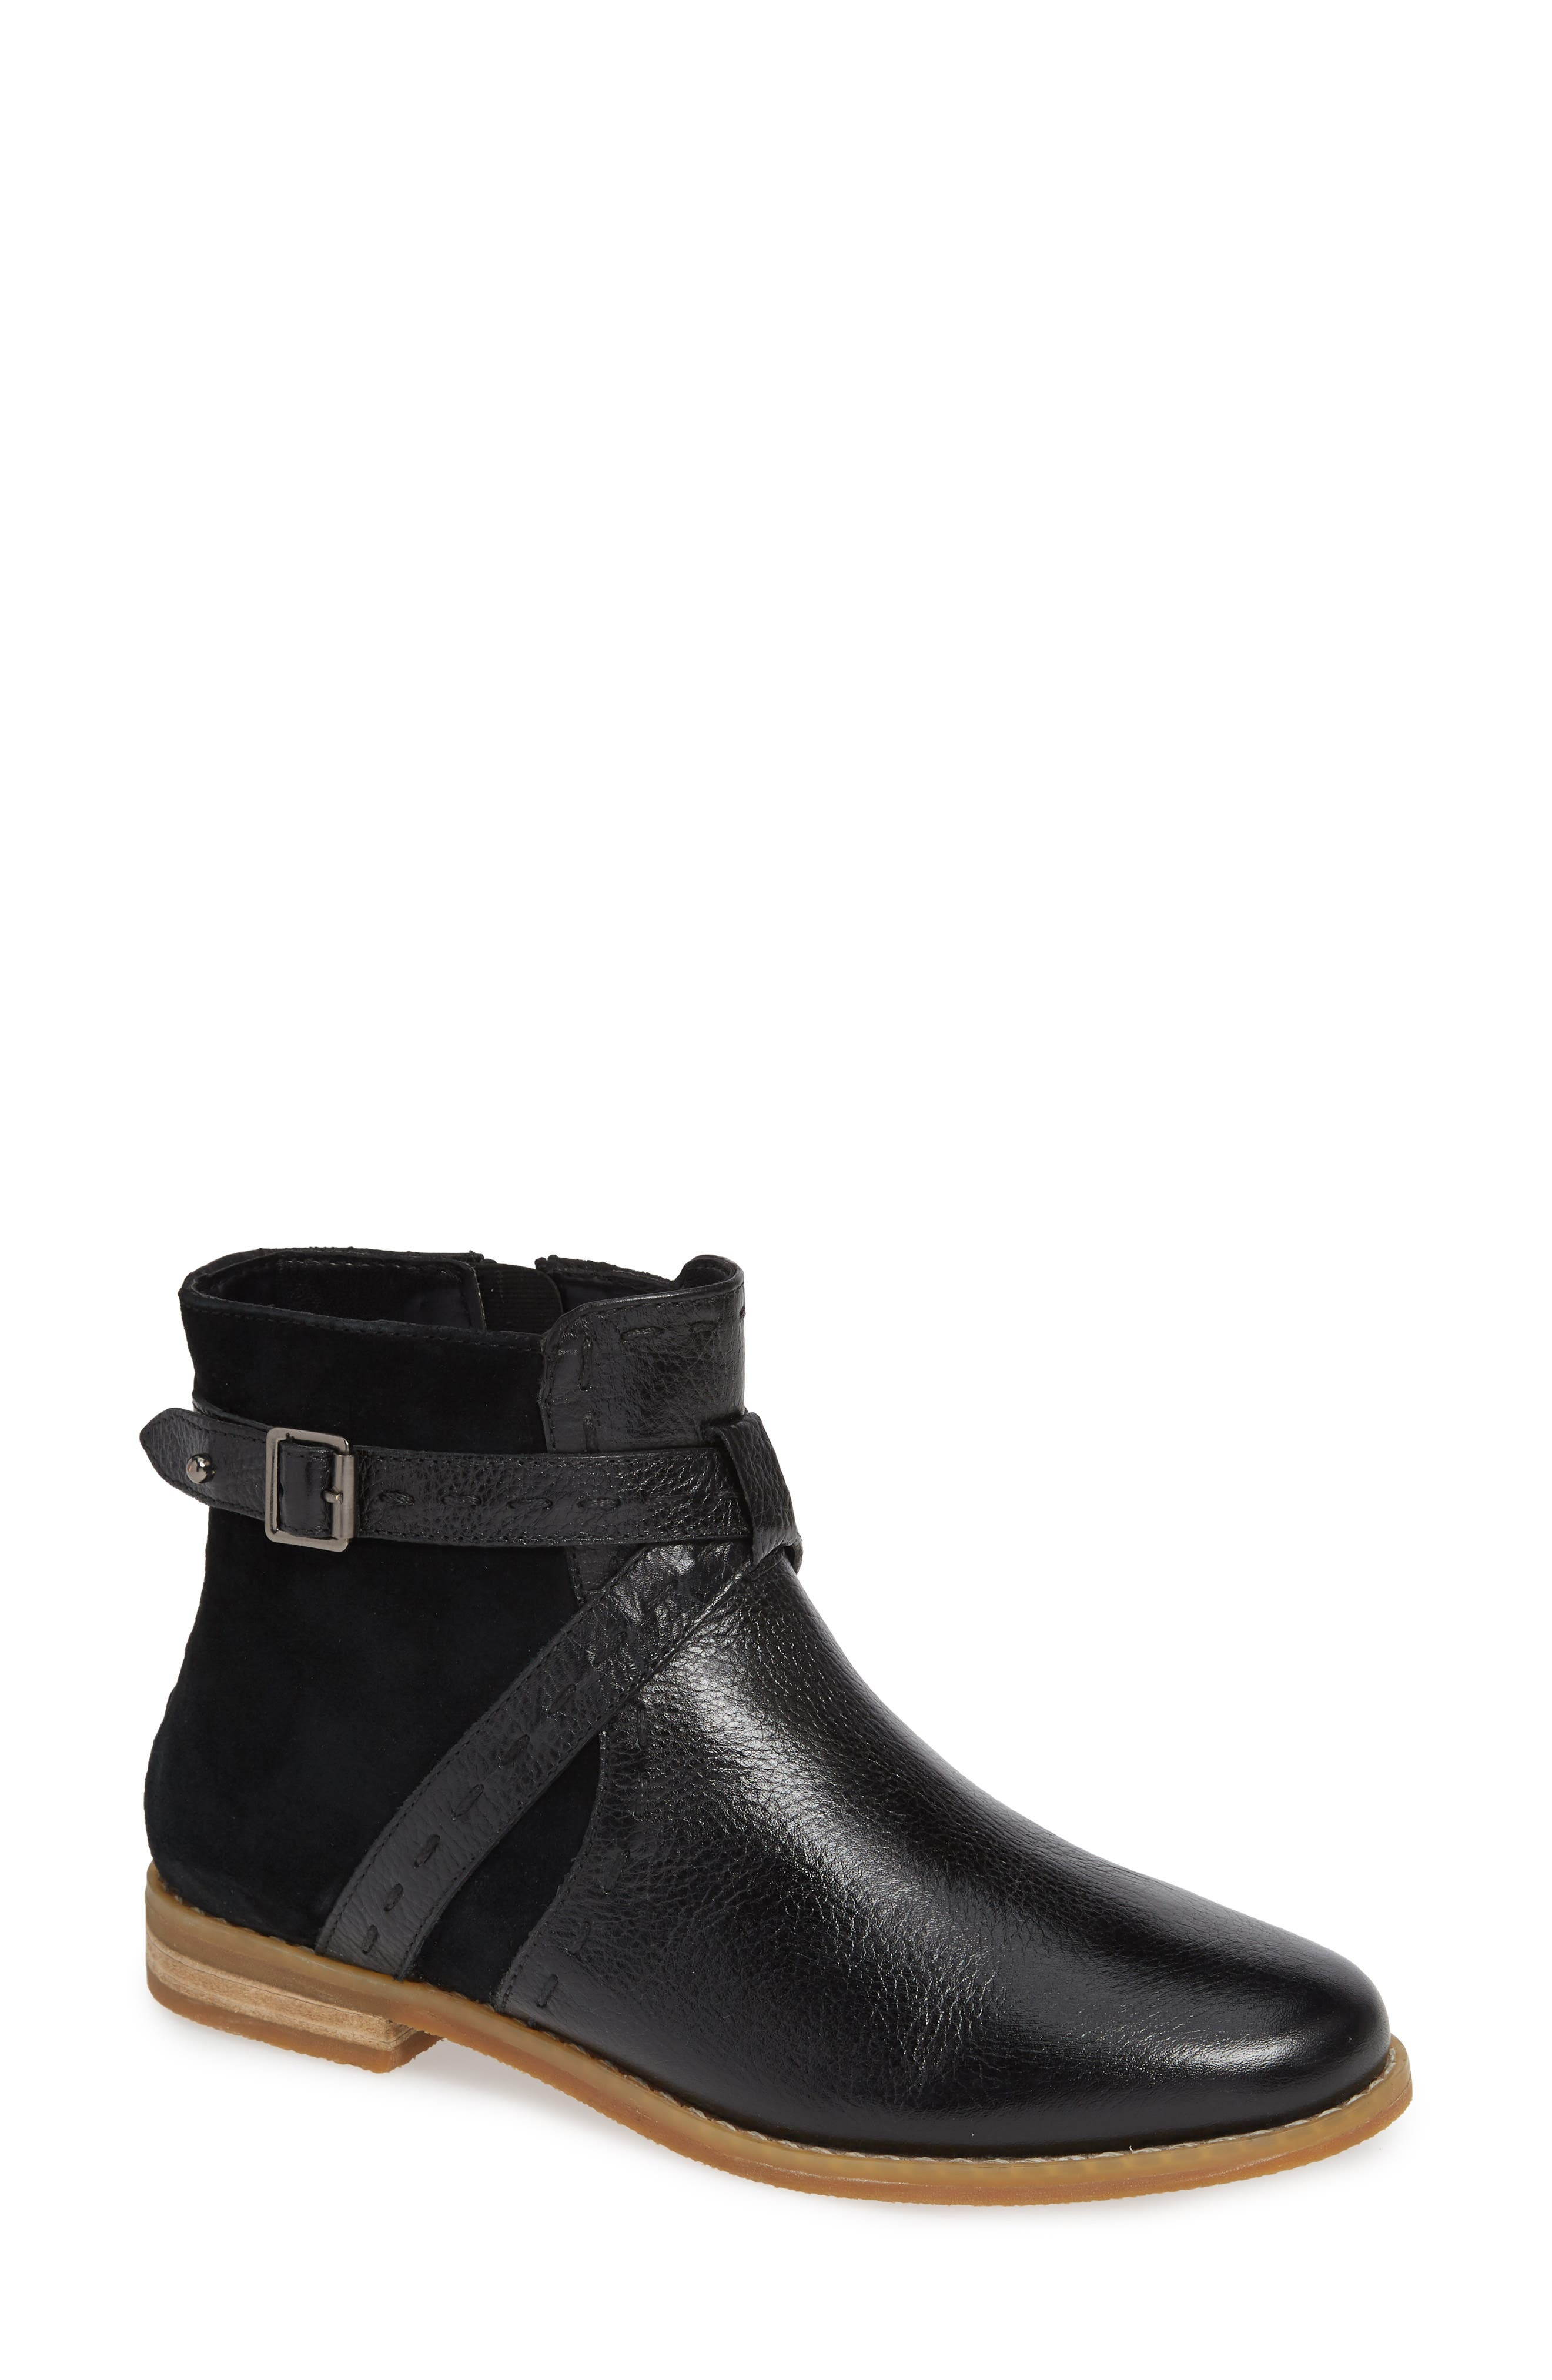 HUSH PUPPIES<SUP>®</SUP> Chardon Belt Water Resistant Bootie, Main, color, BLACK LEATHER